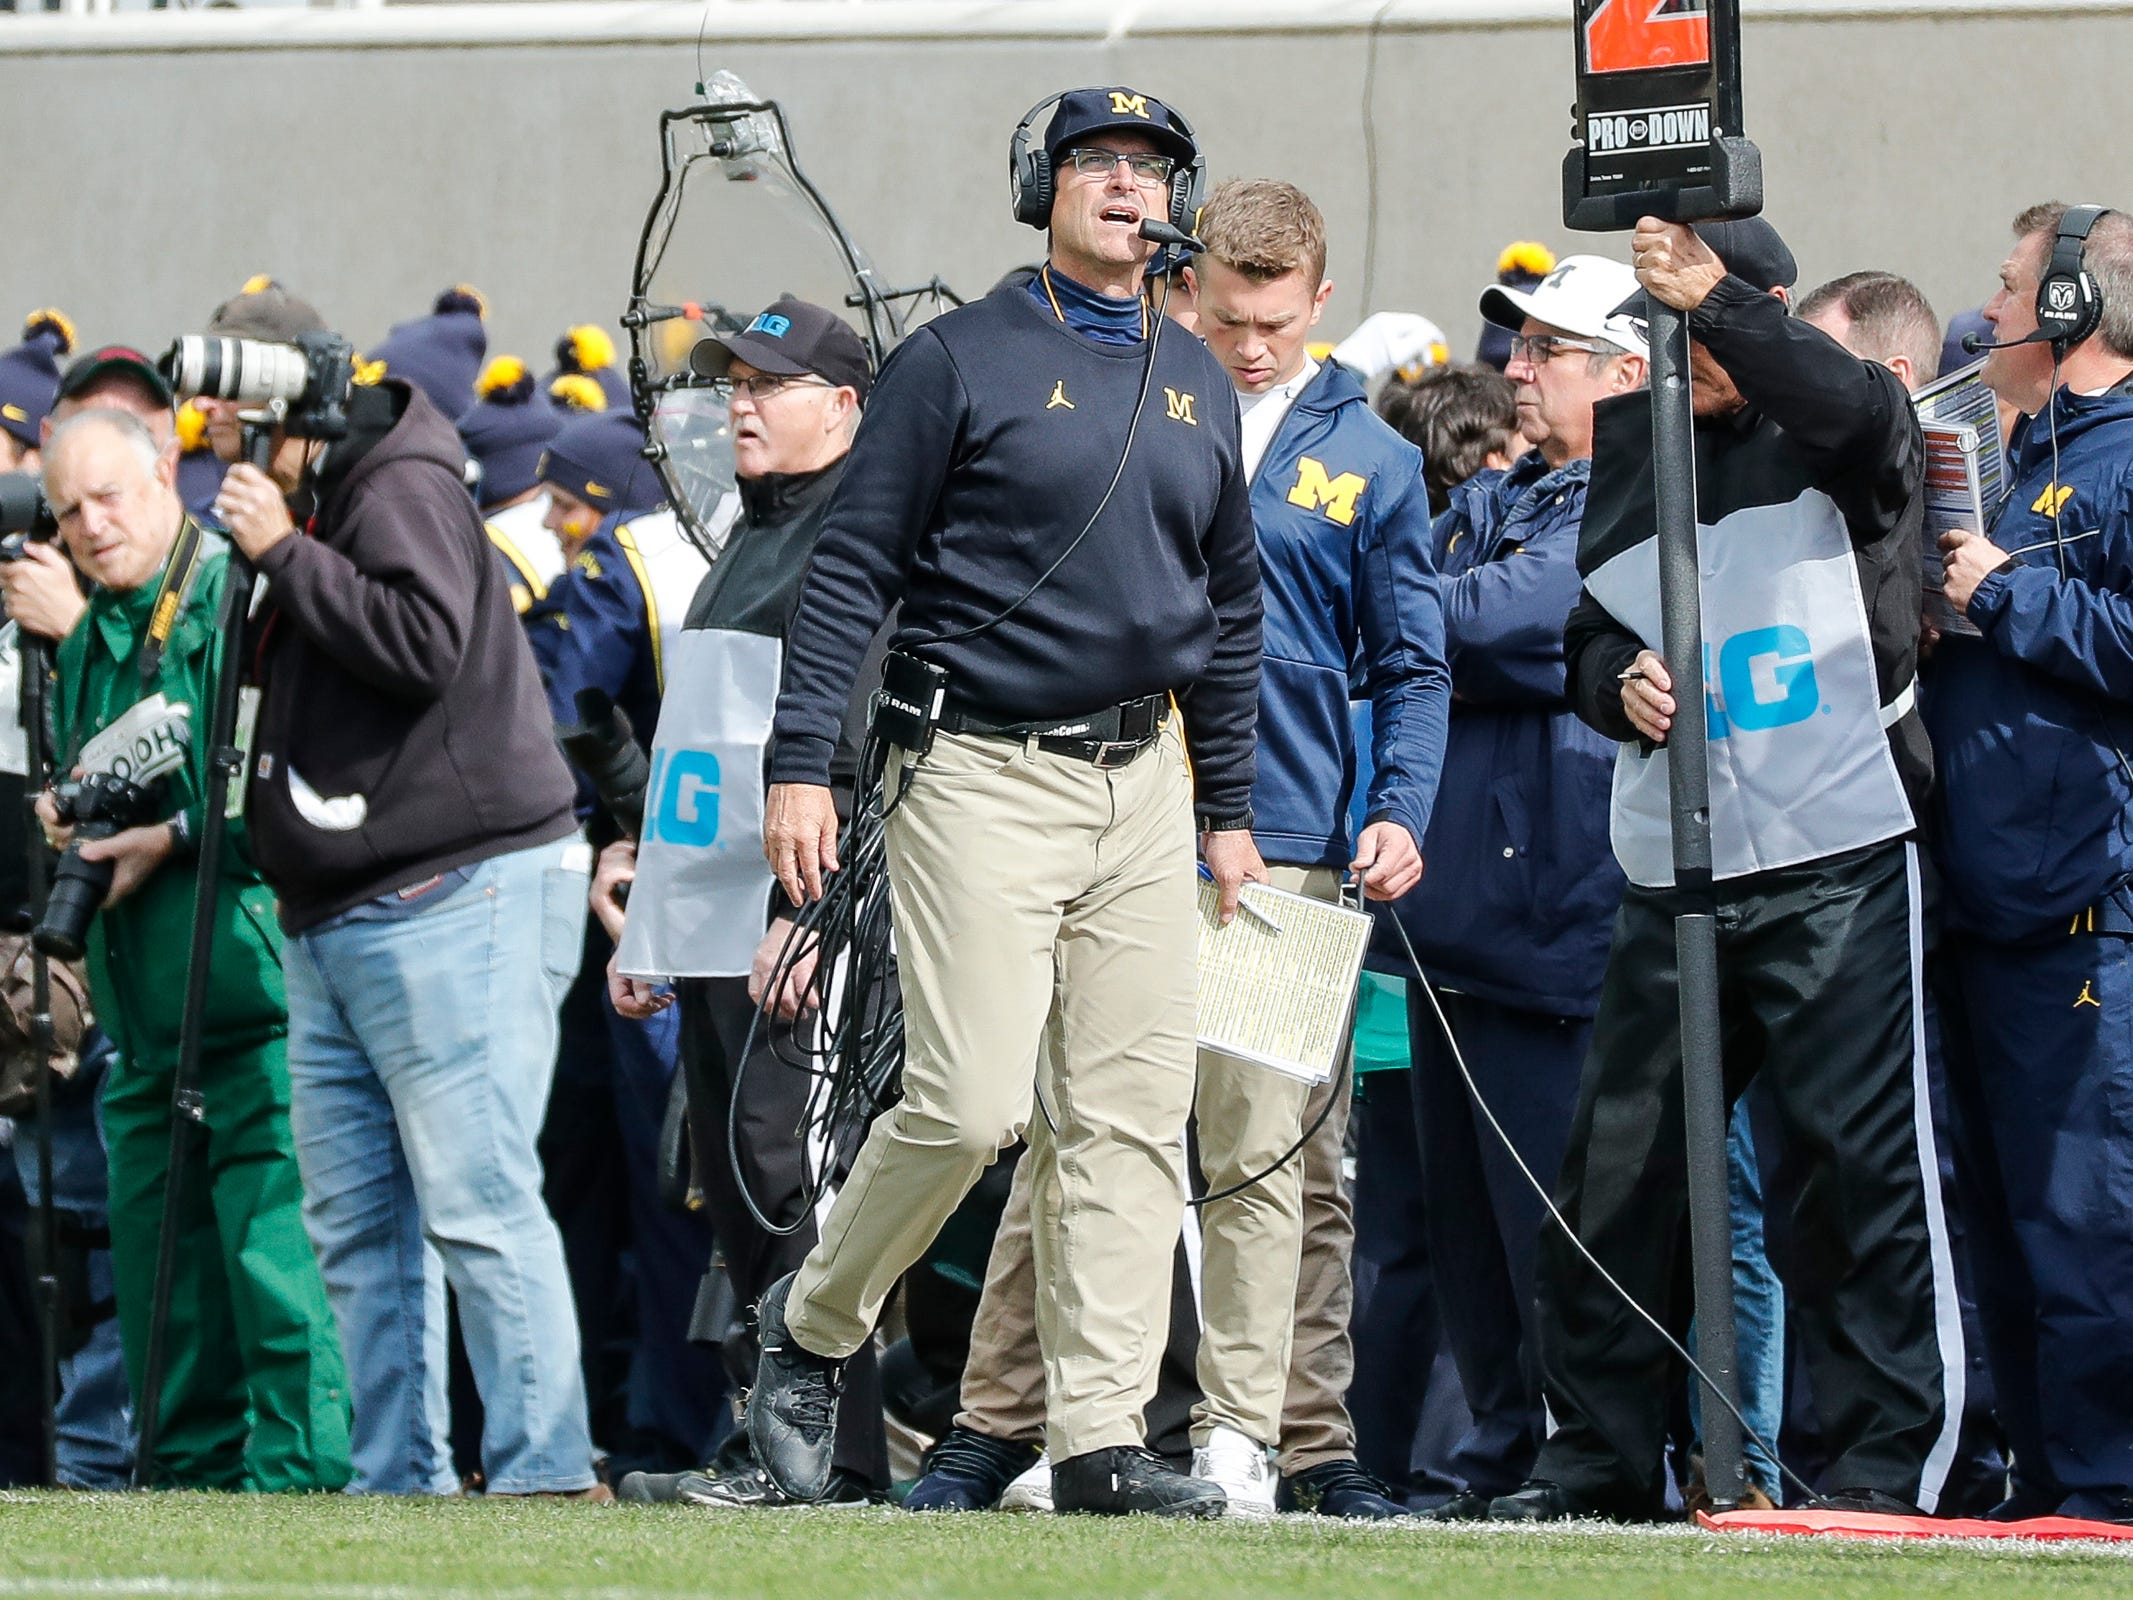 Michigan coach Jim Harbaugh looks up during the first half against Michigan State at Spartan Stadium on Saturday, Oct. 20, 2018.